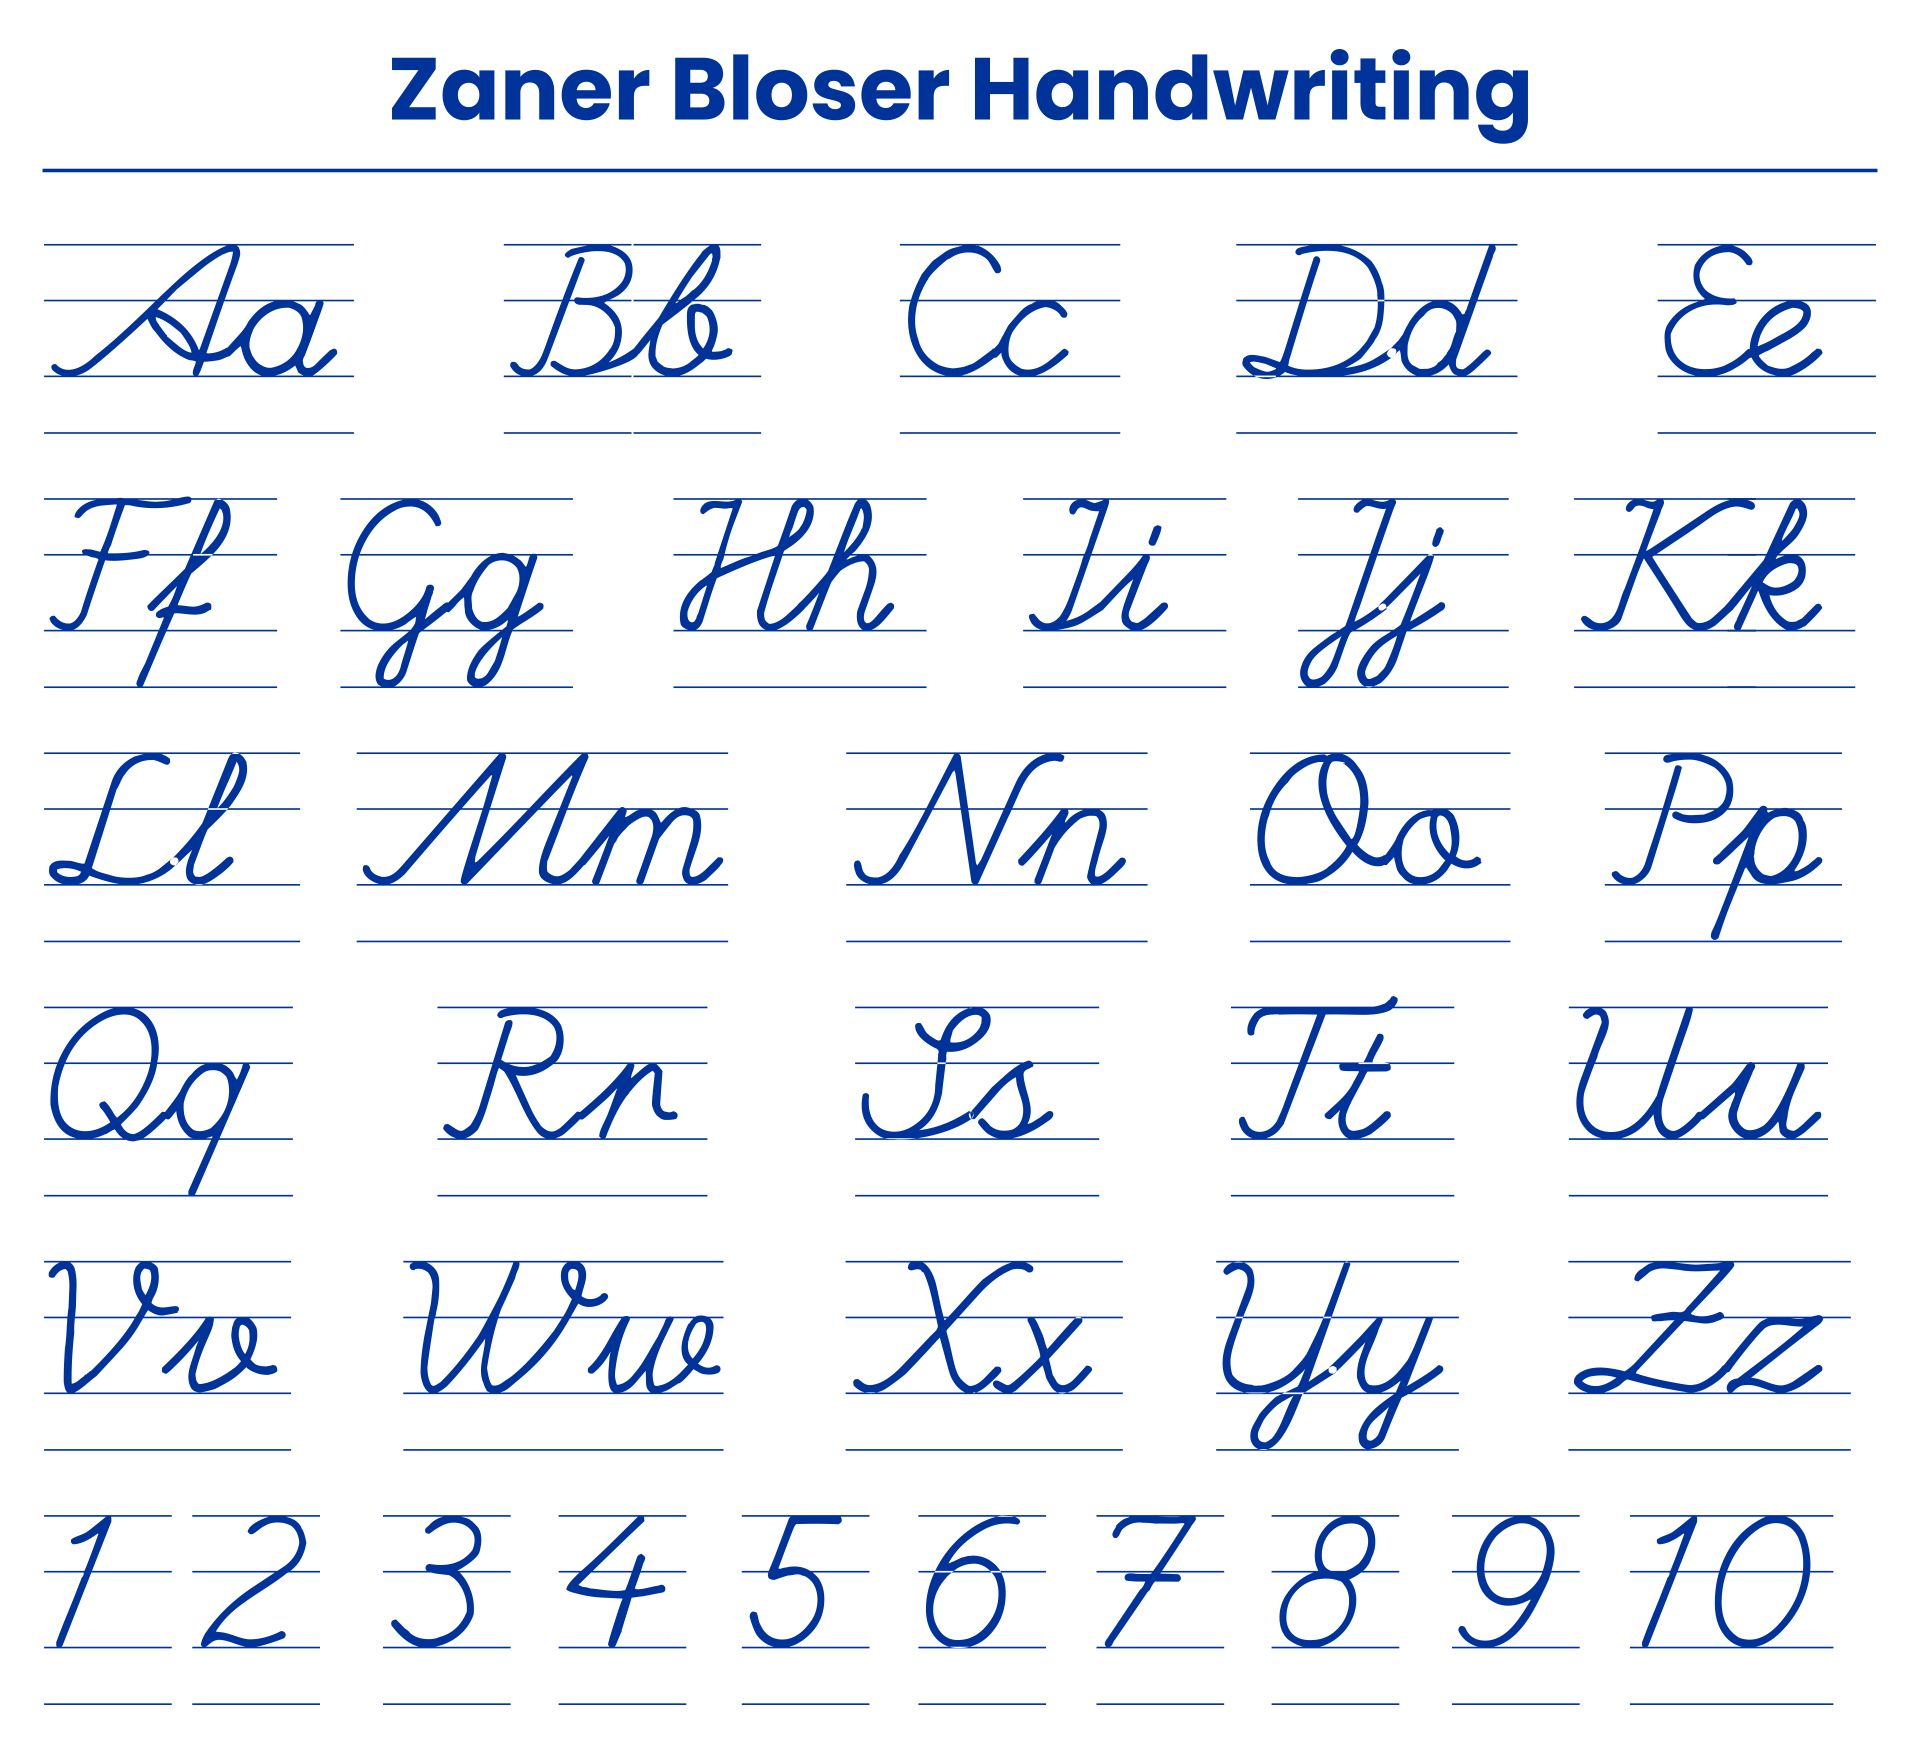 7 Best Images Of Zaner Bloser Handwriting Chart Printable